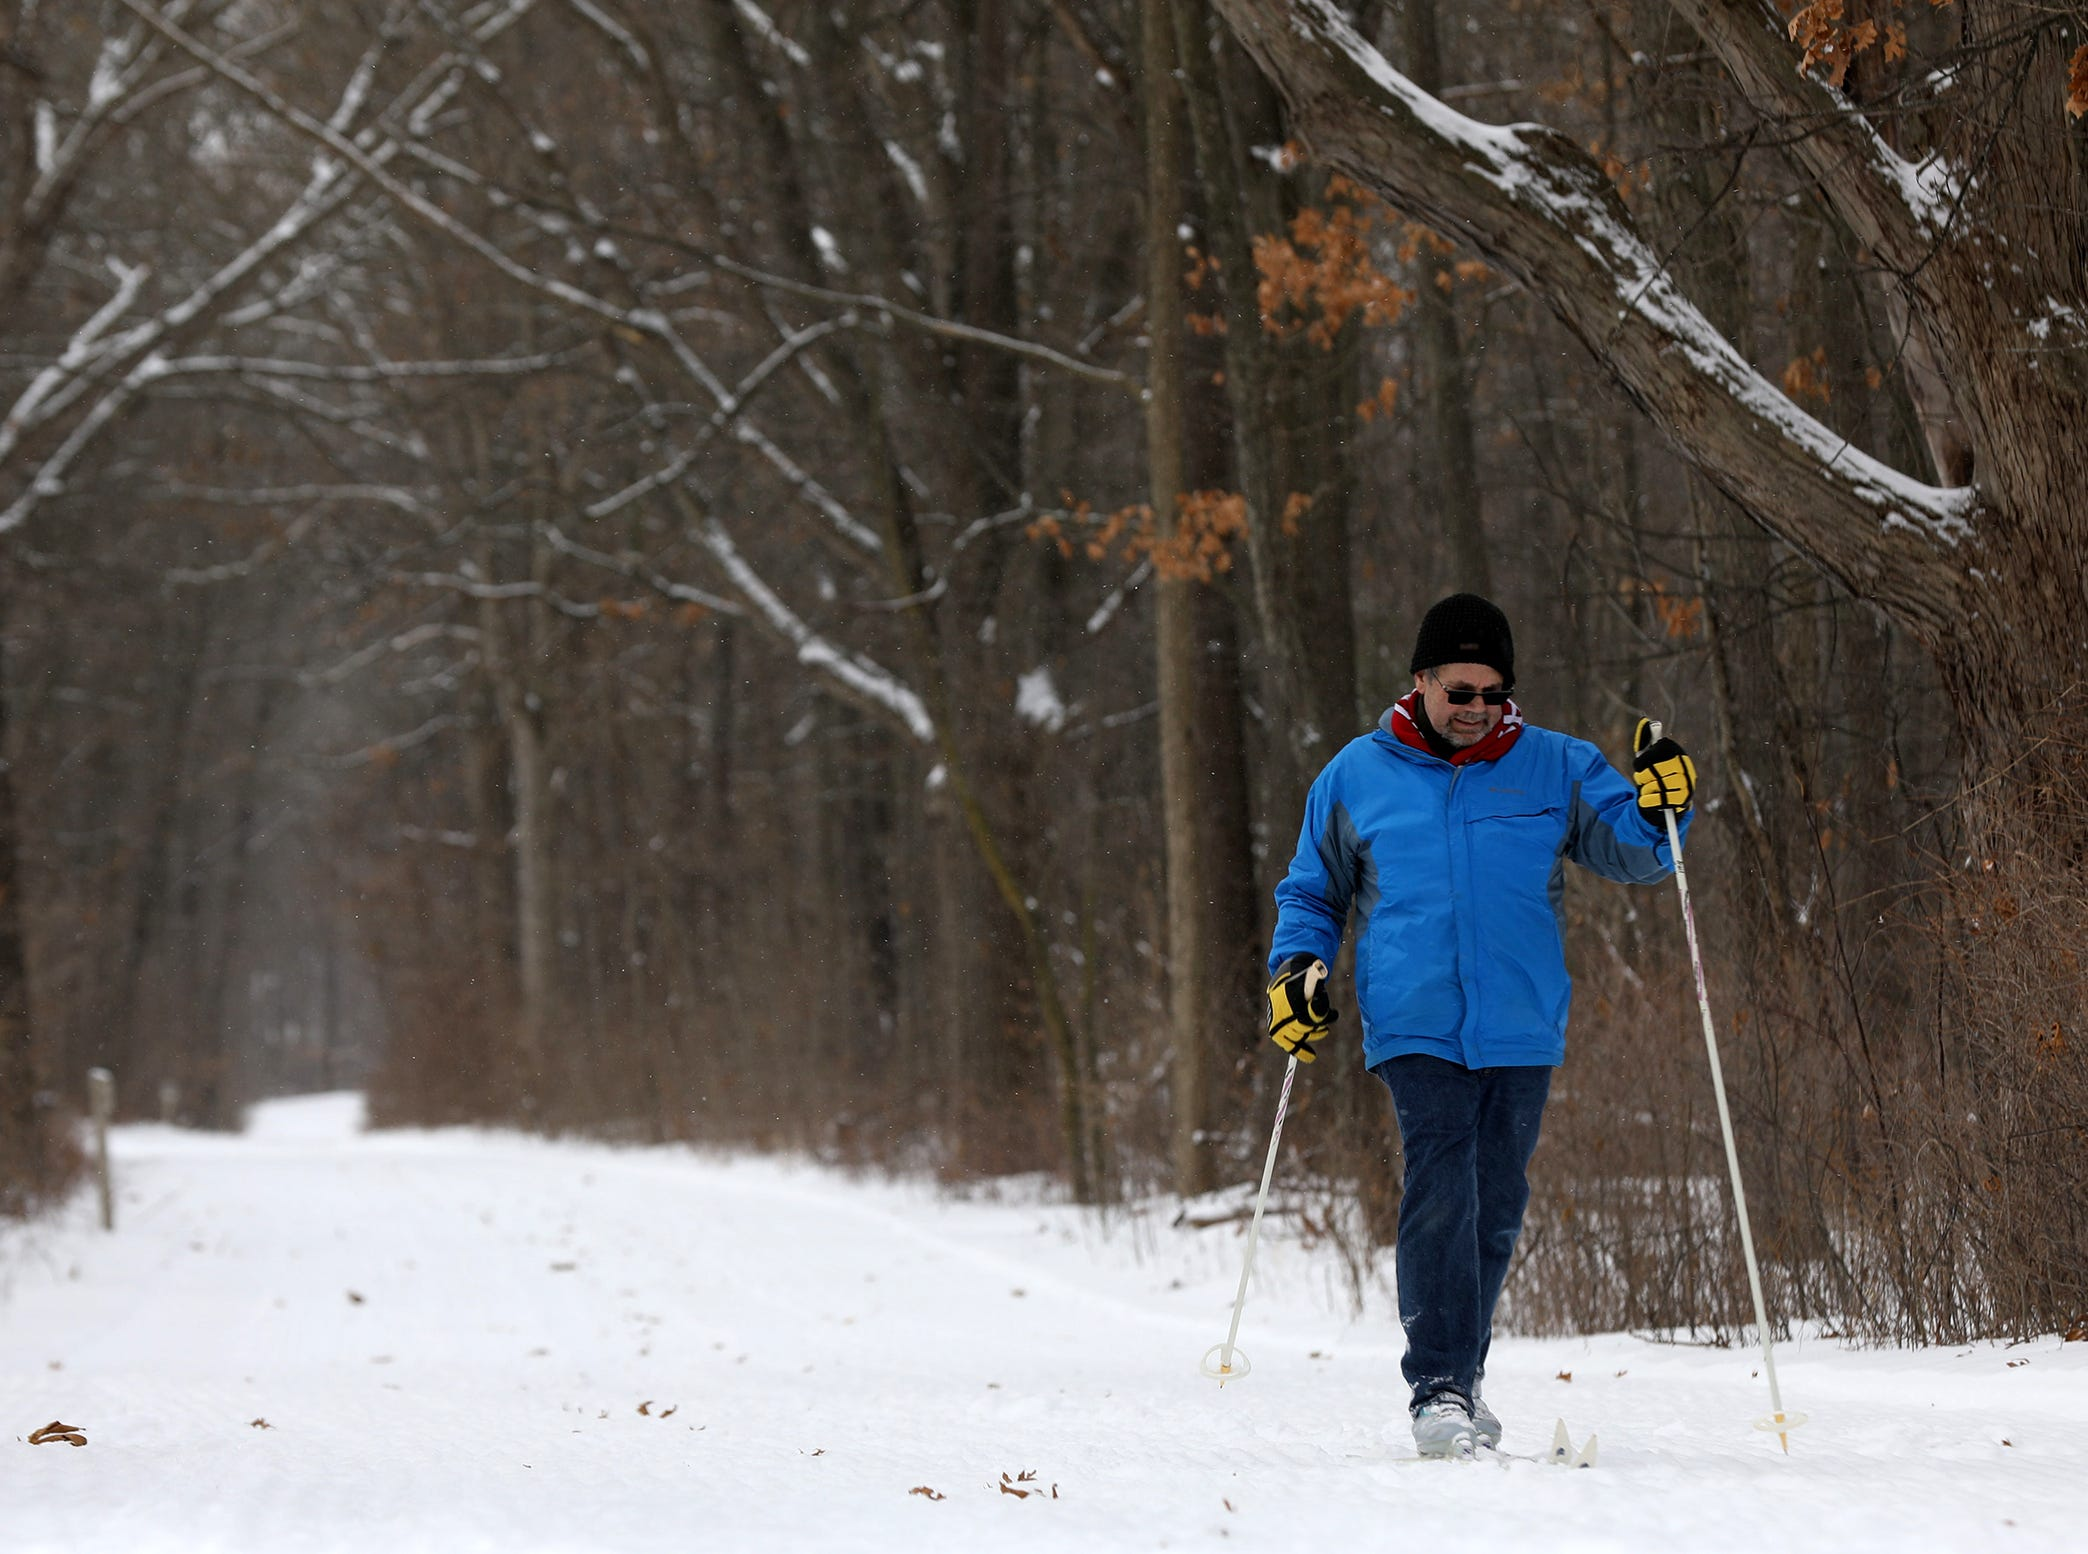 Robert Nichols of Auburn Hills spends part of his morning on the cross country trails at Independence Oaks County Park in the Village of Clarkson, Michigan on Tuesday, January 29, 2019.